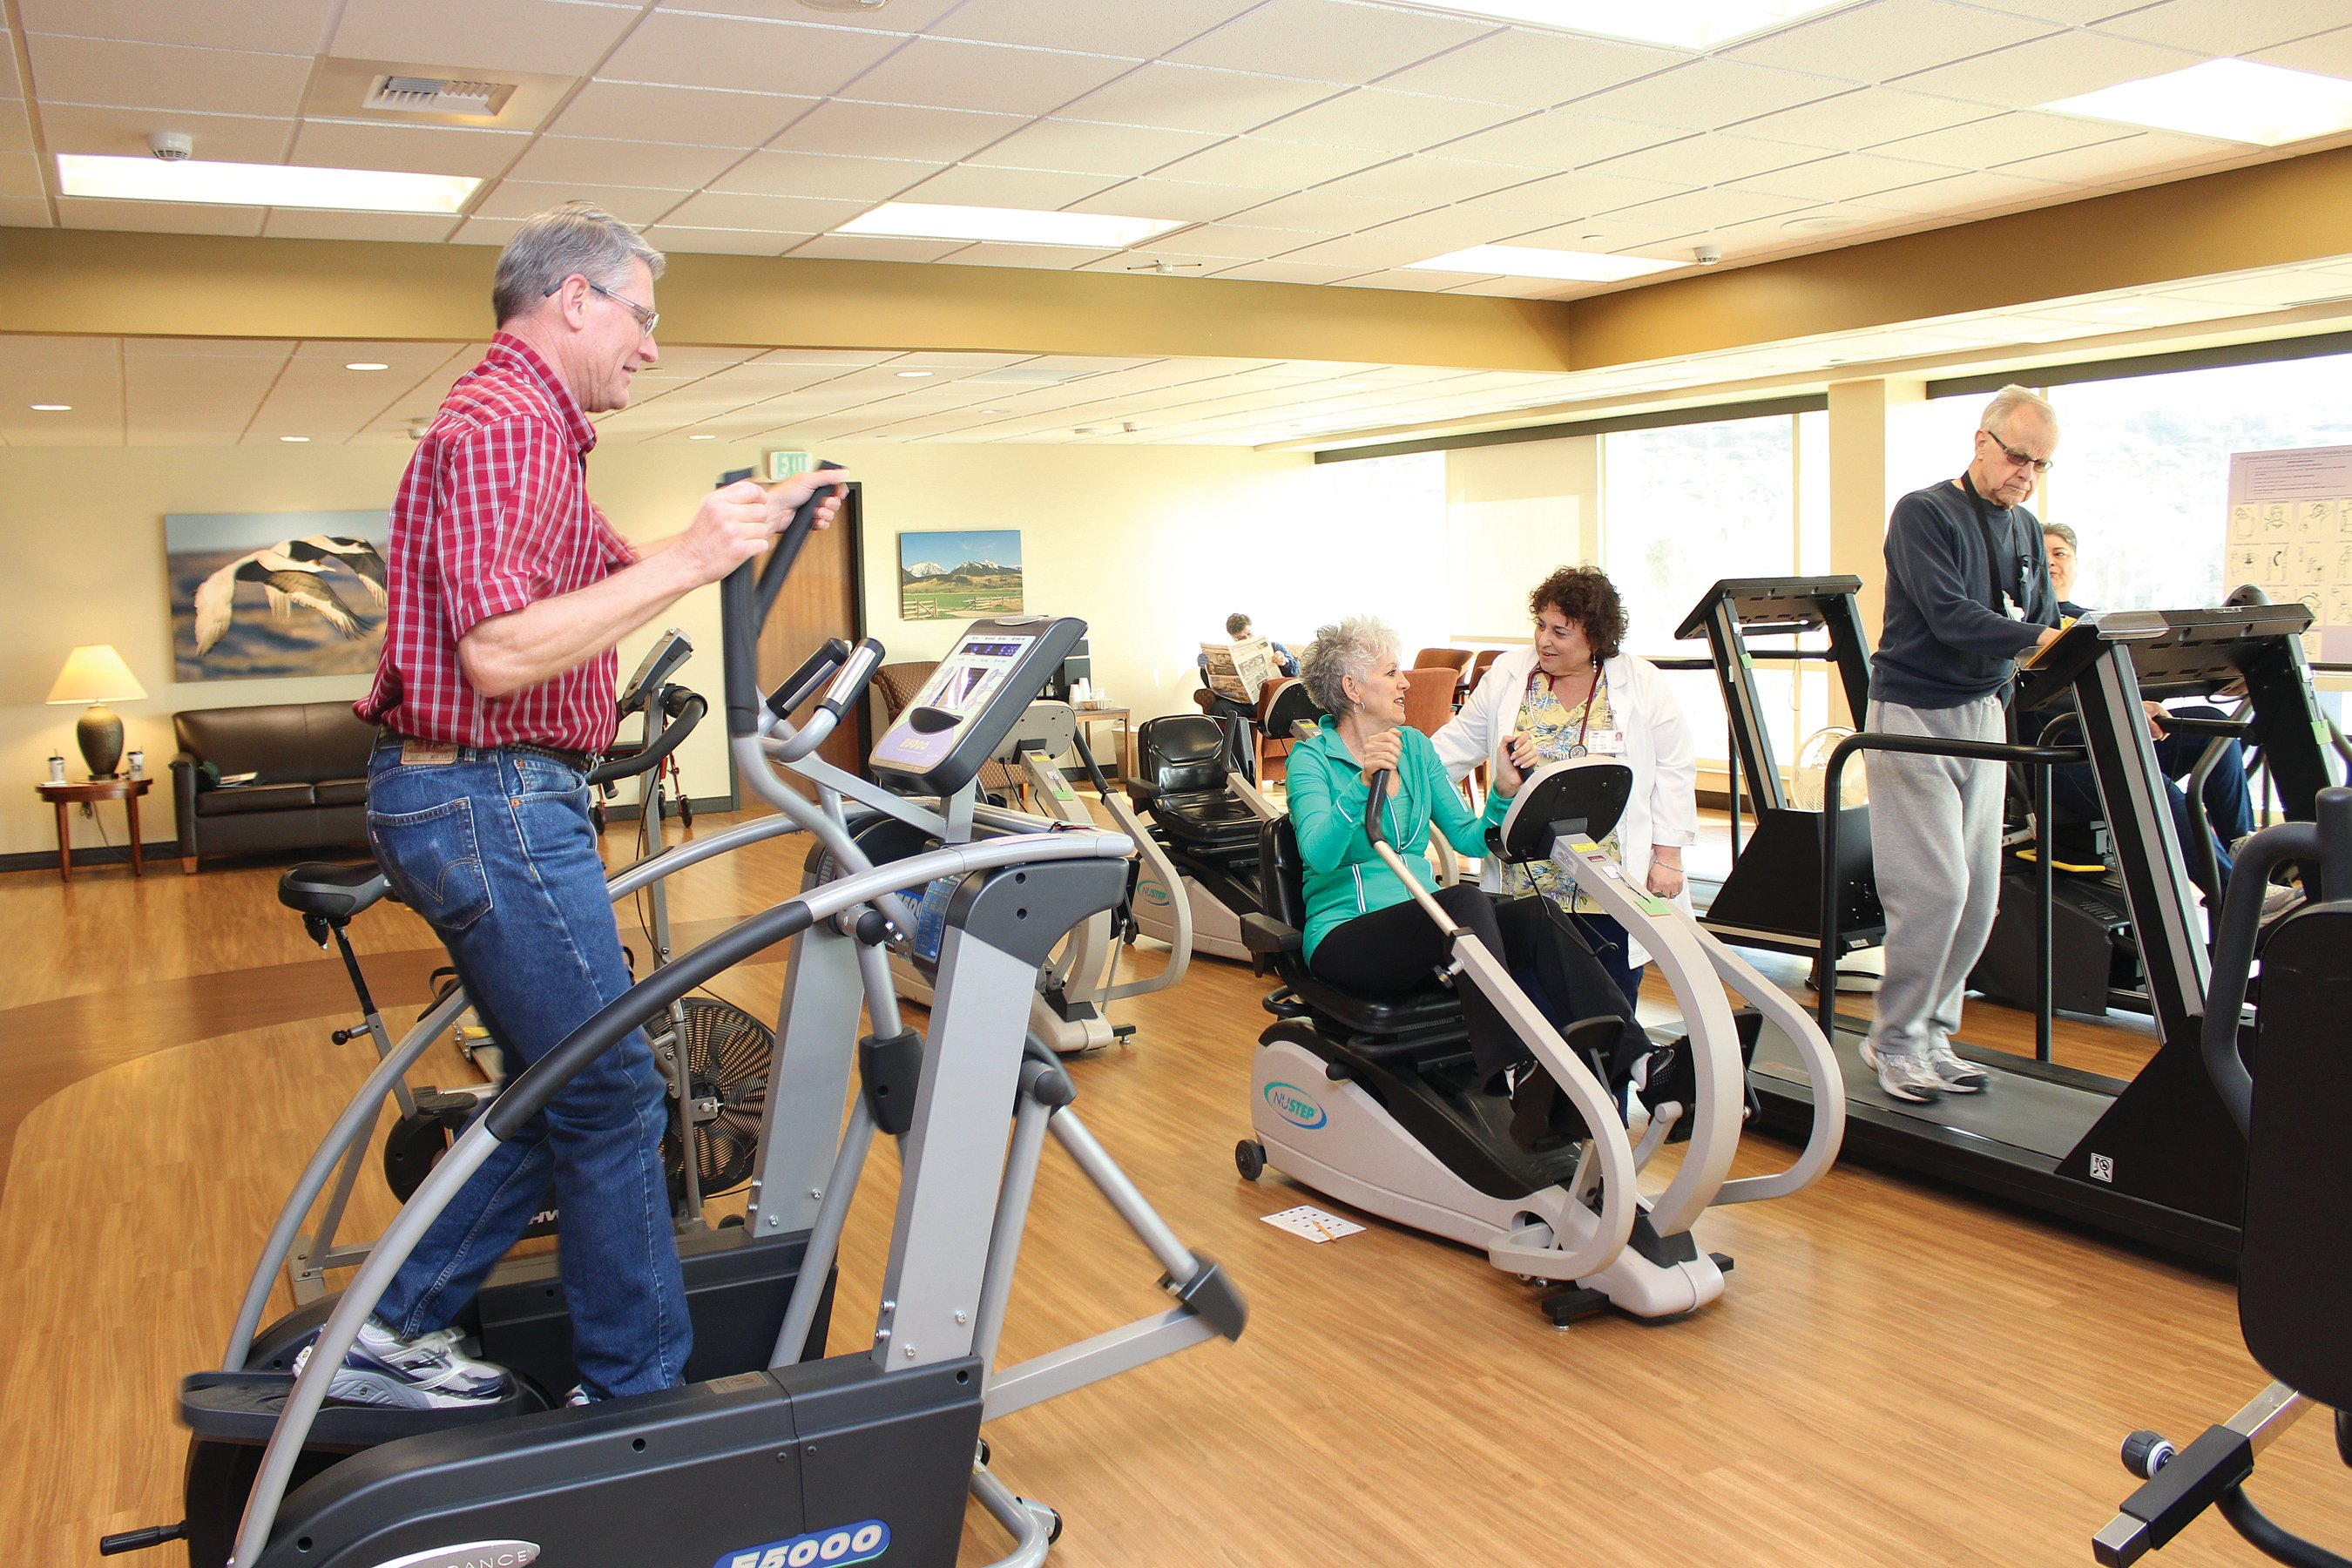 Fitness in the Cardiac Rehab-LifeFit area